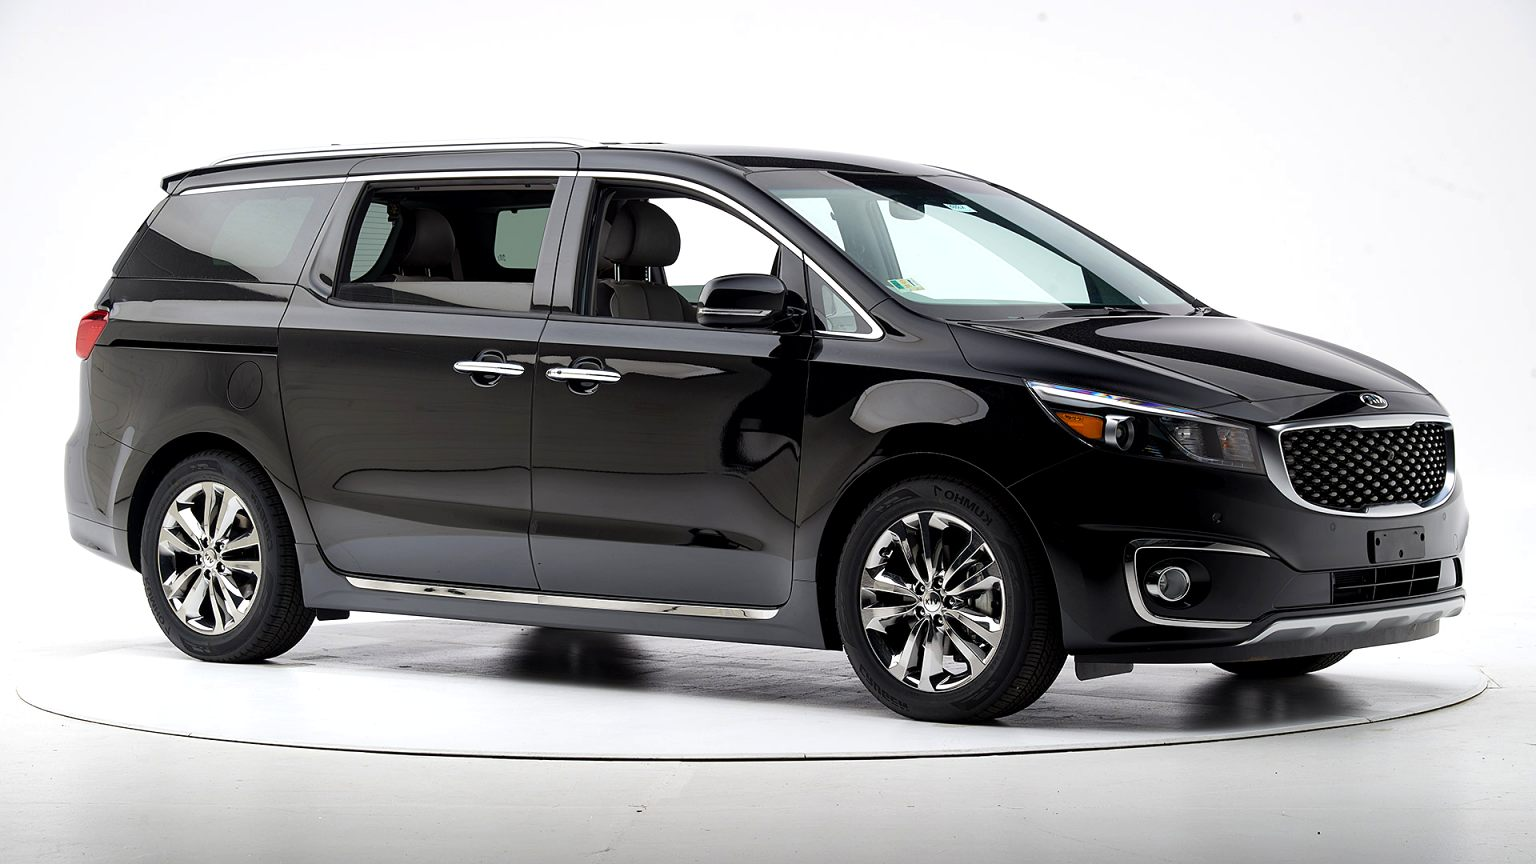 kia a sedona 2020 Review